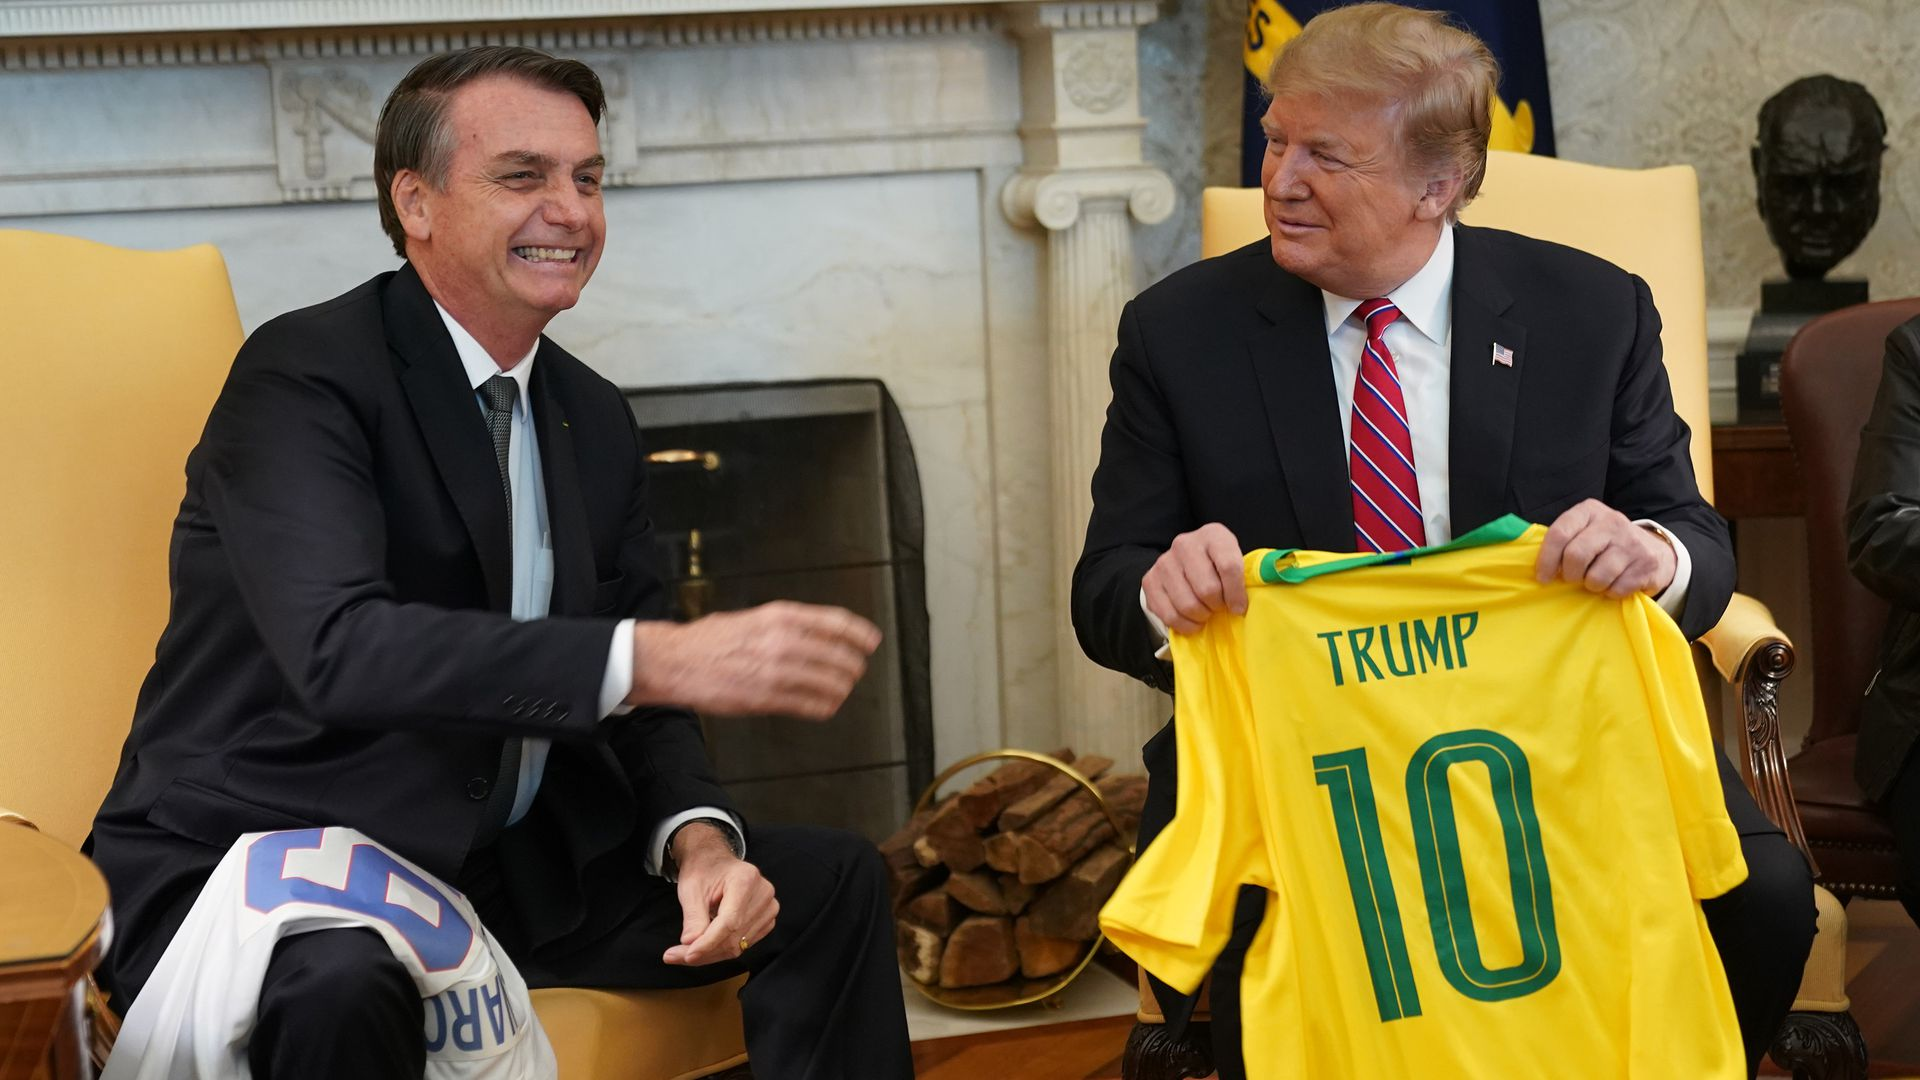 Trump suggests Brazil could become NATO member